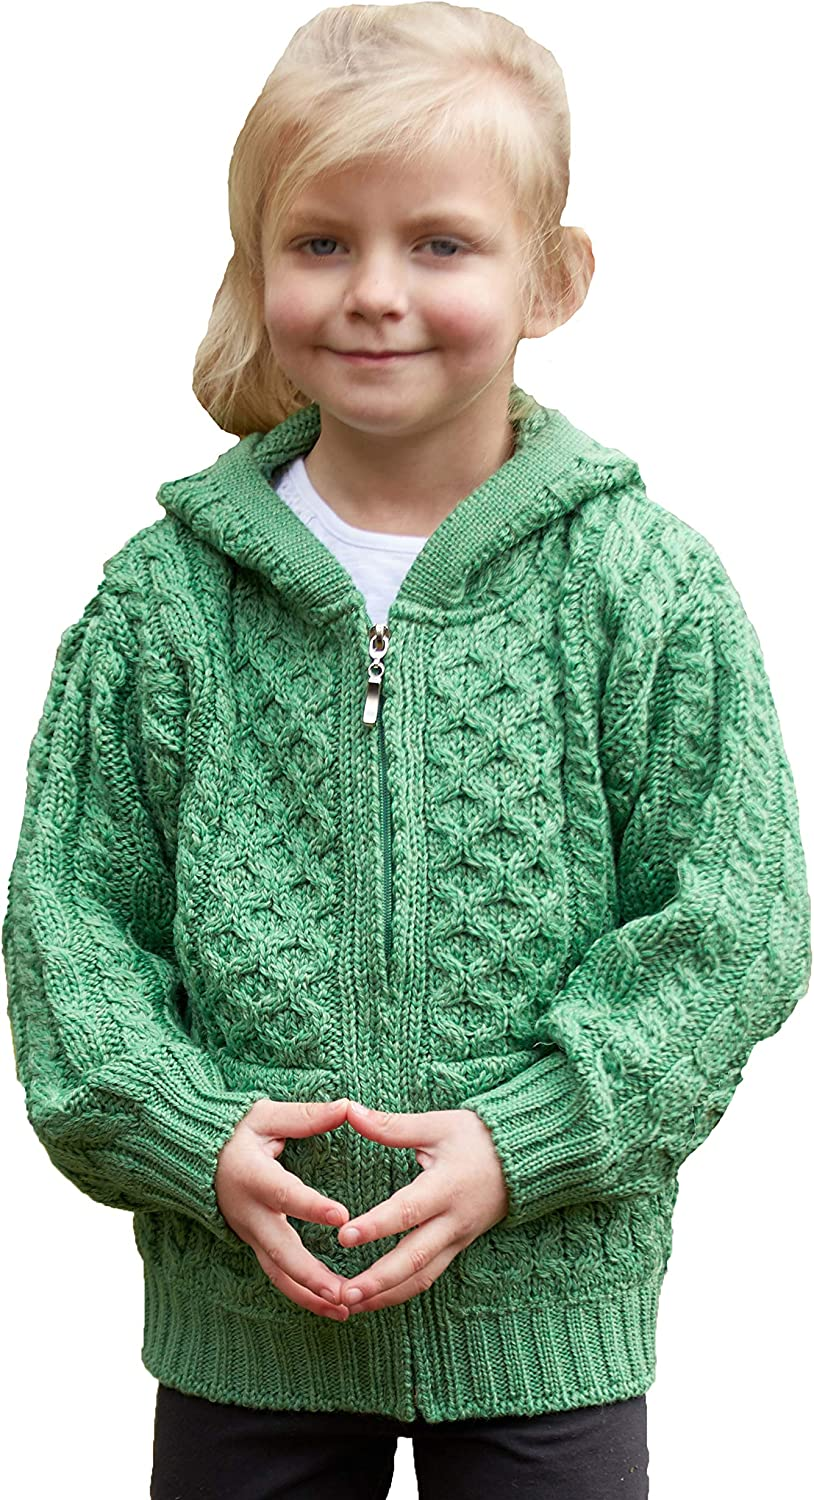 Aran Crafts Kid's Irish Max 72% OFF Cable 100% Knitted Zip Cardigan Hooded In a popularity